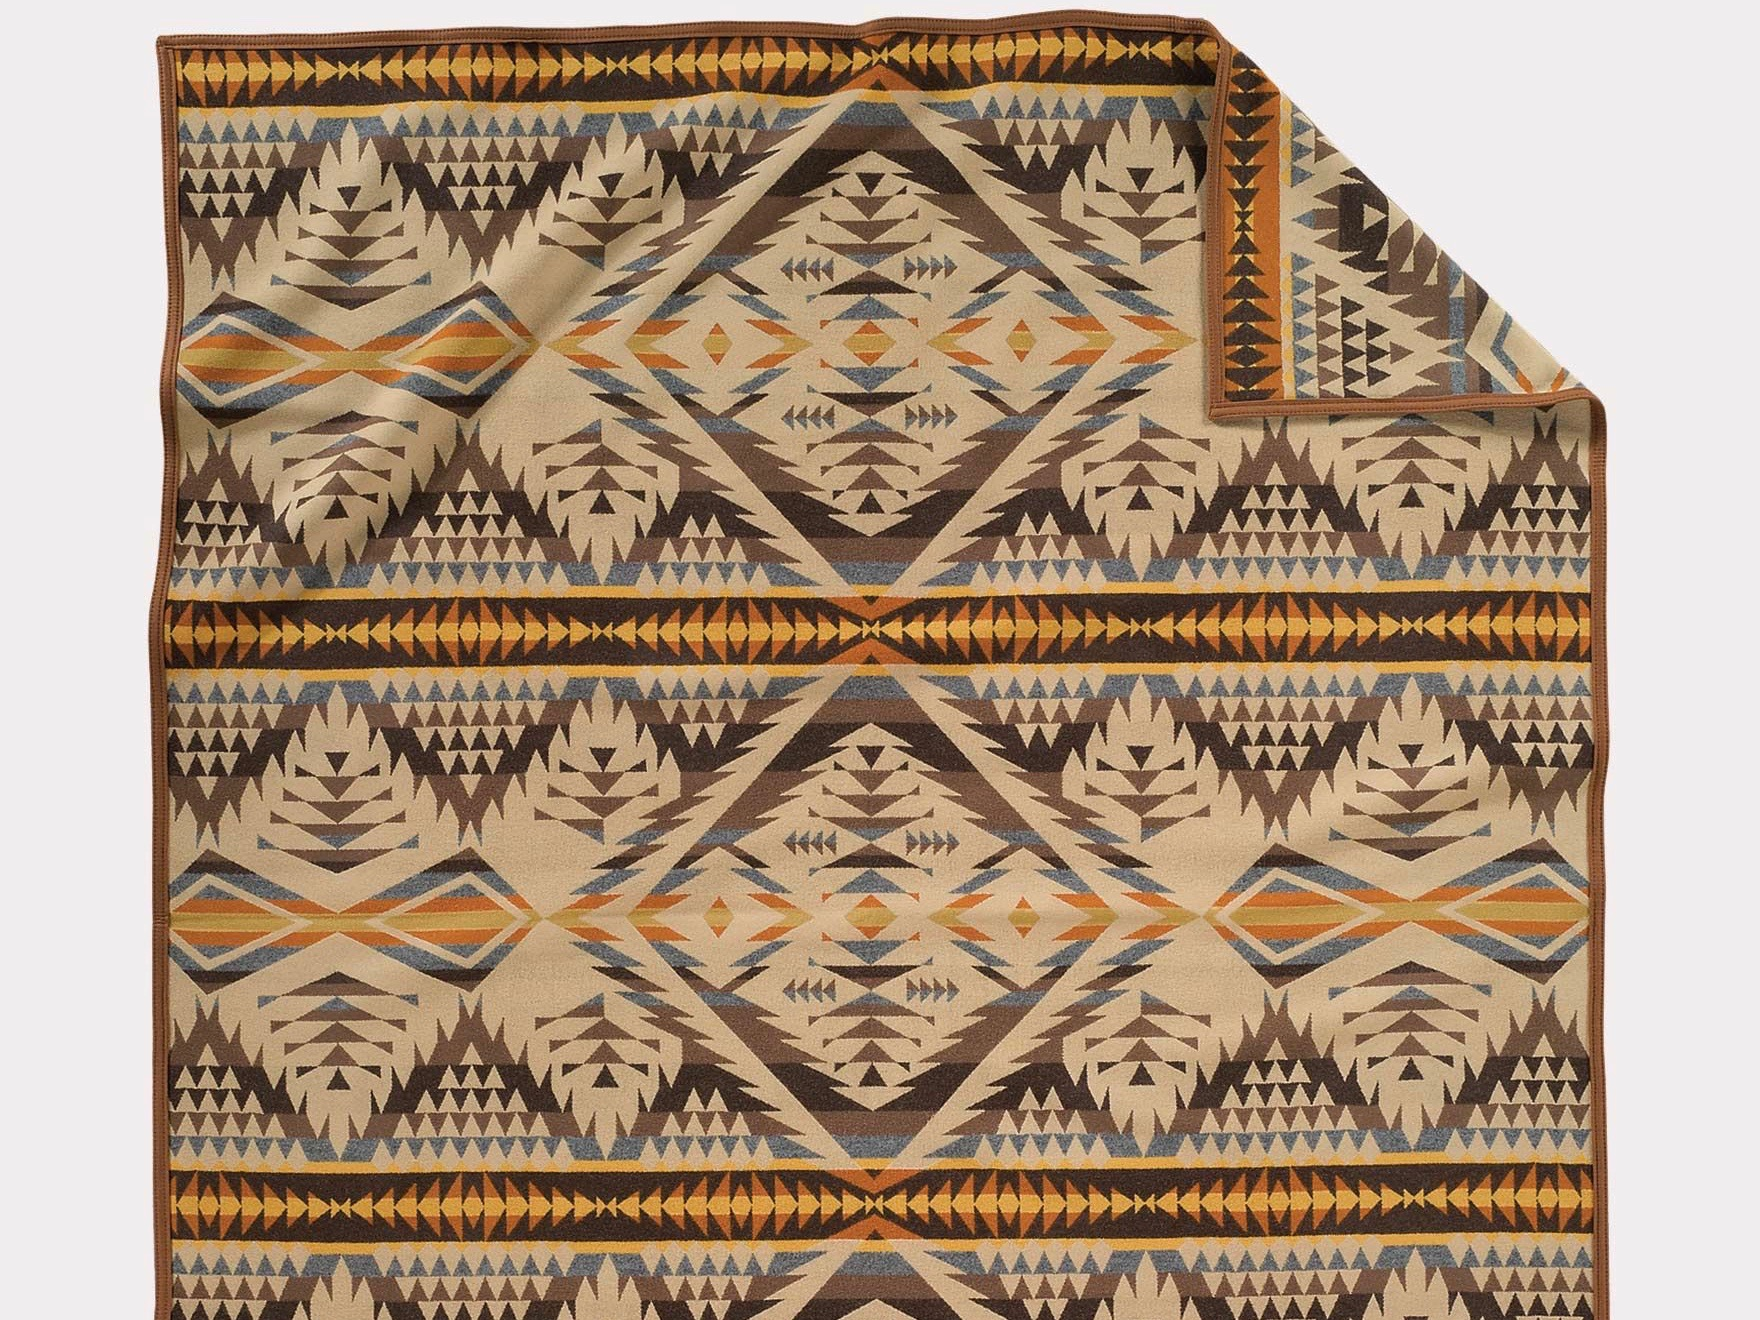 Oregon politician donated Pendleton blanket given by Umatilla Tribes